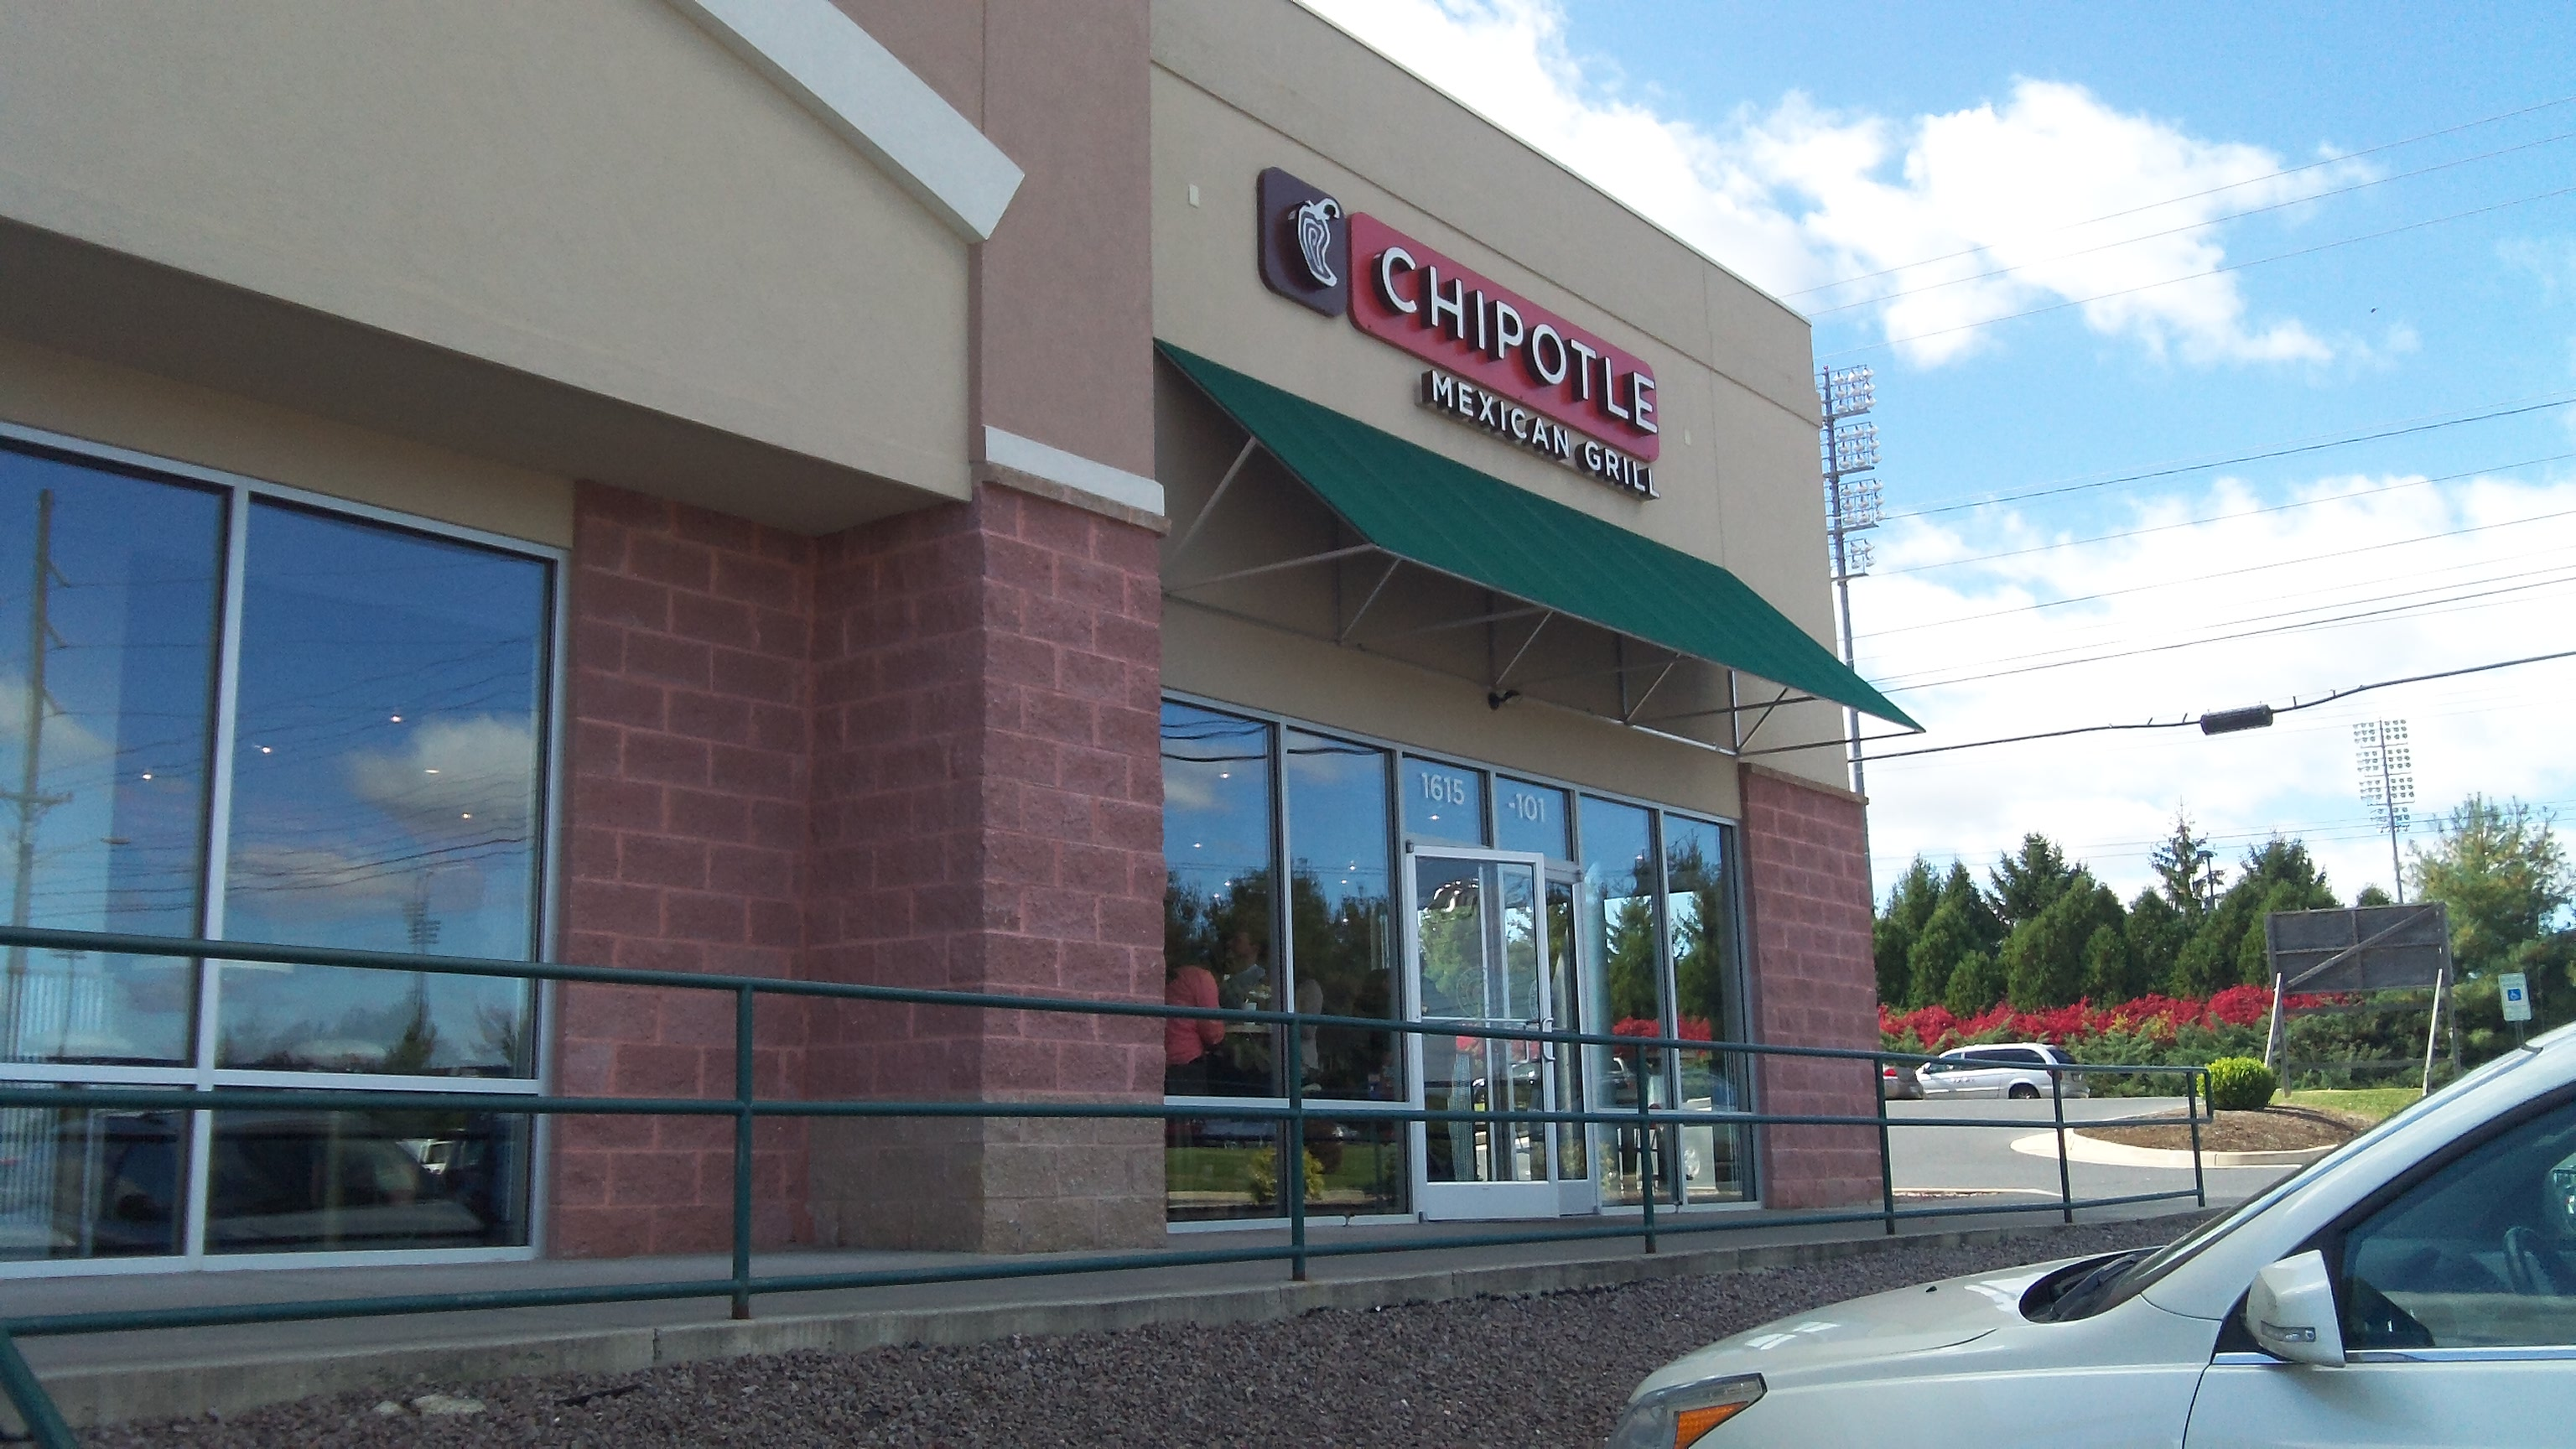 the reason why america loves to eat at chipotle mexican grill Americans' love for taco bell, the nation's large tex-mex fast-food chain, must be vexing for chipotle mexican grill, which has long prided itself on its whole and responsibly sourced ingredients .